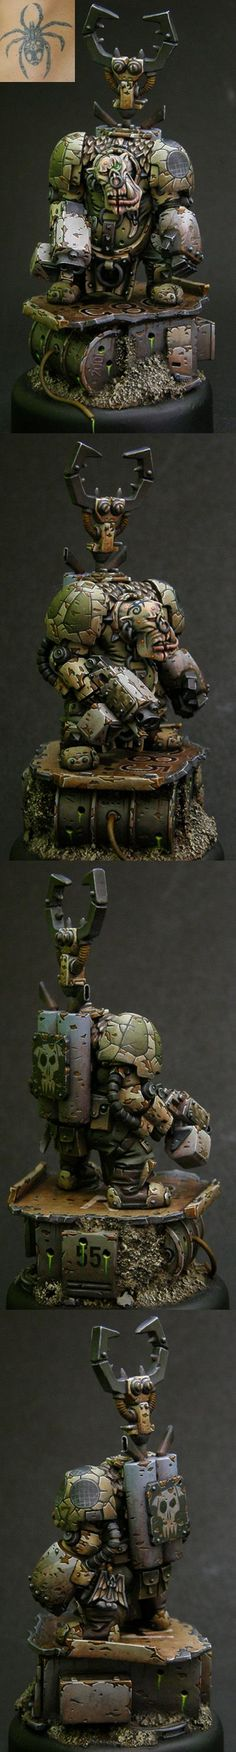 Nurgle Ork. I personally don't like the painting style but it's a cool concept.